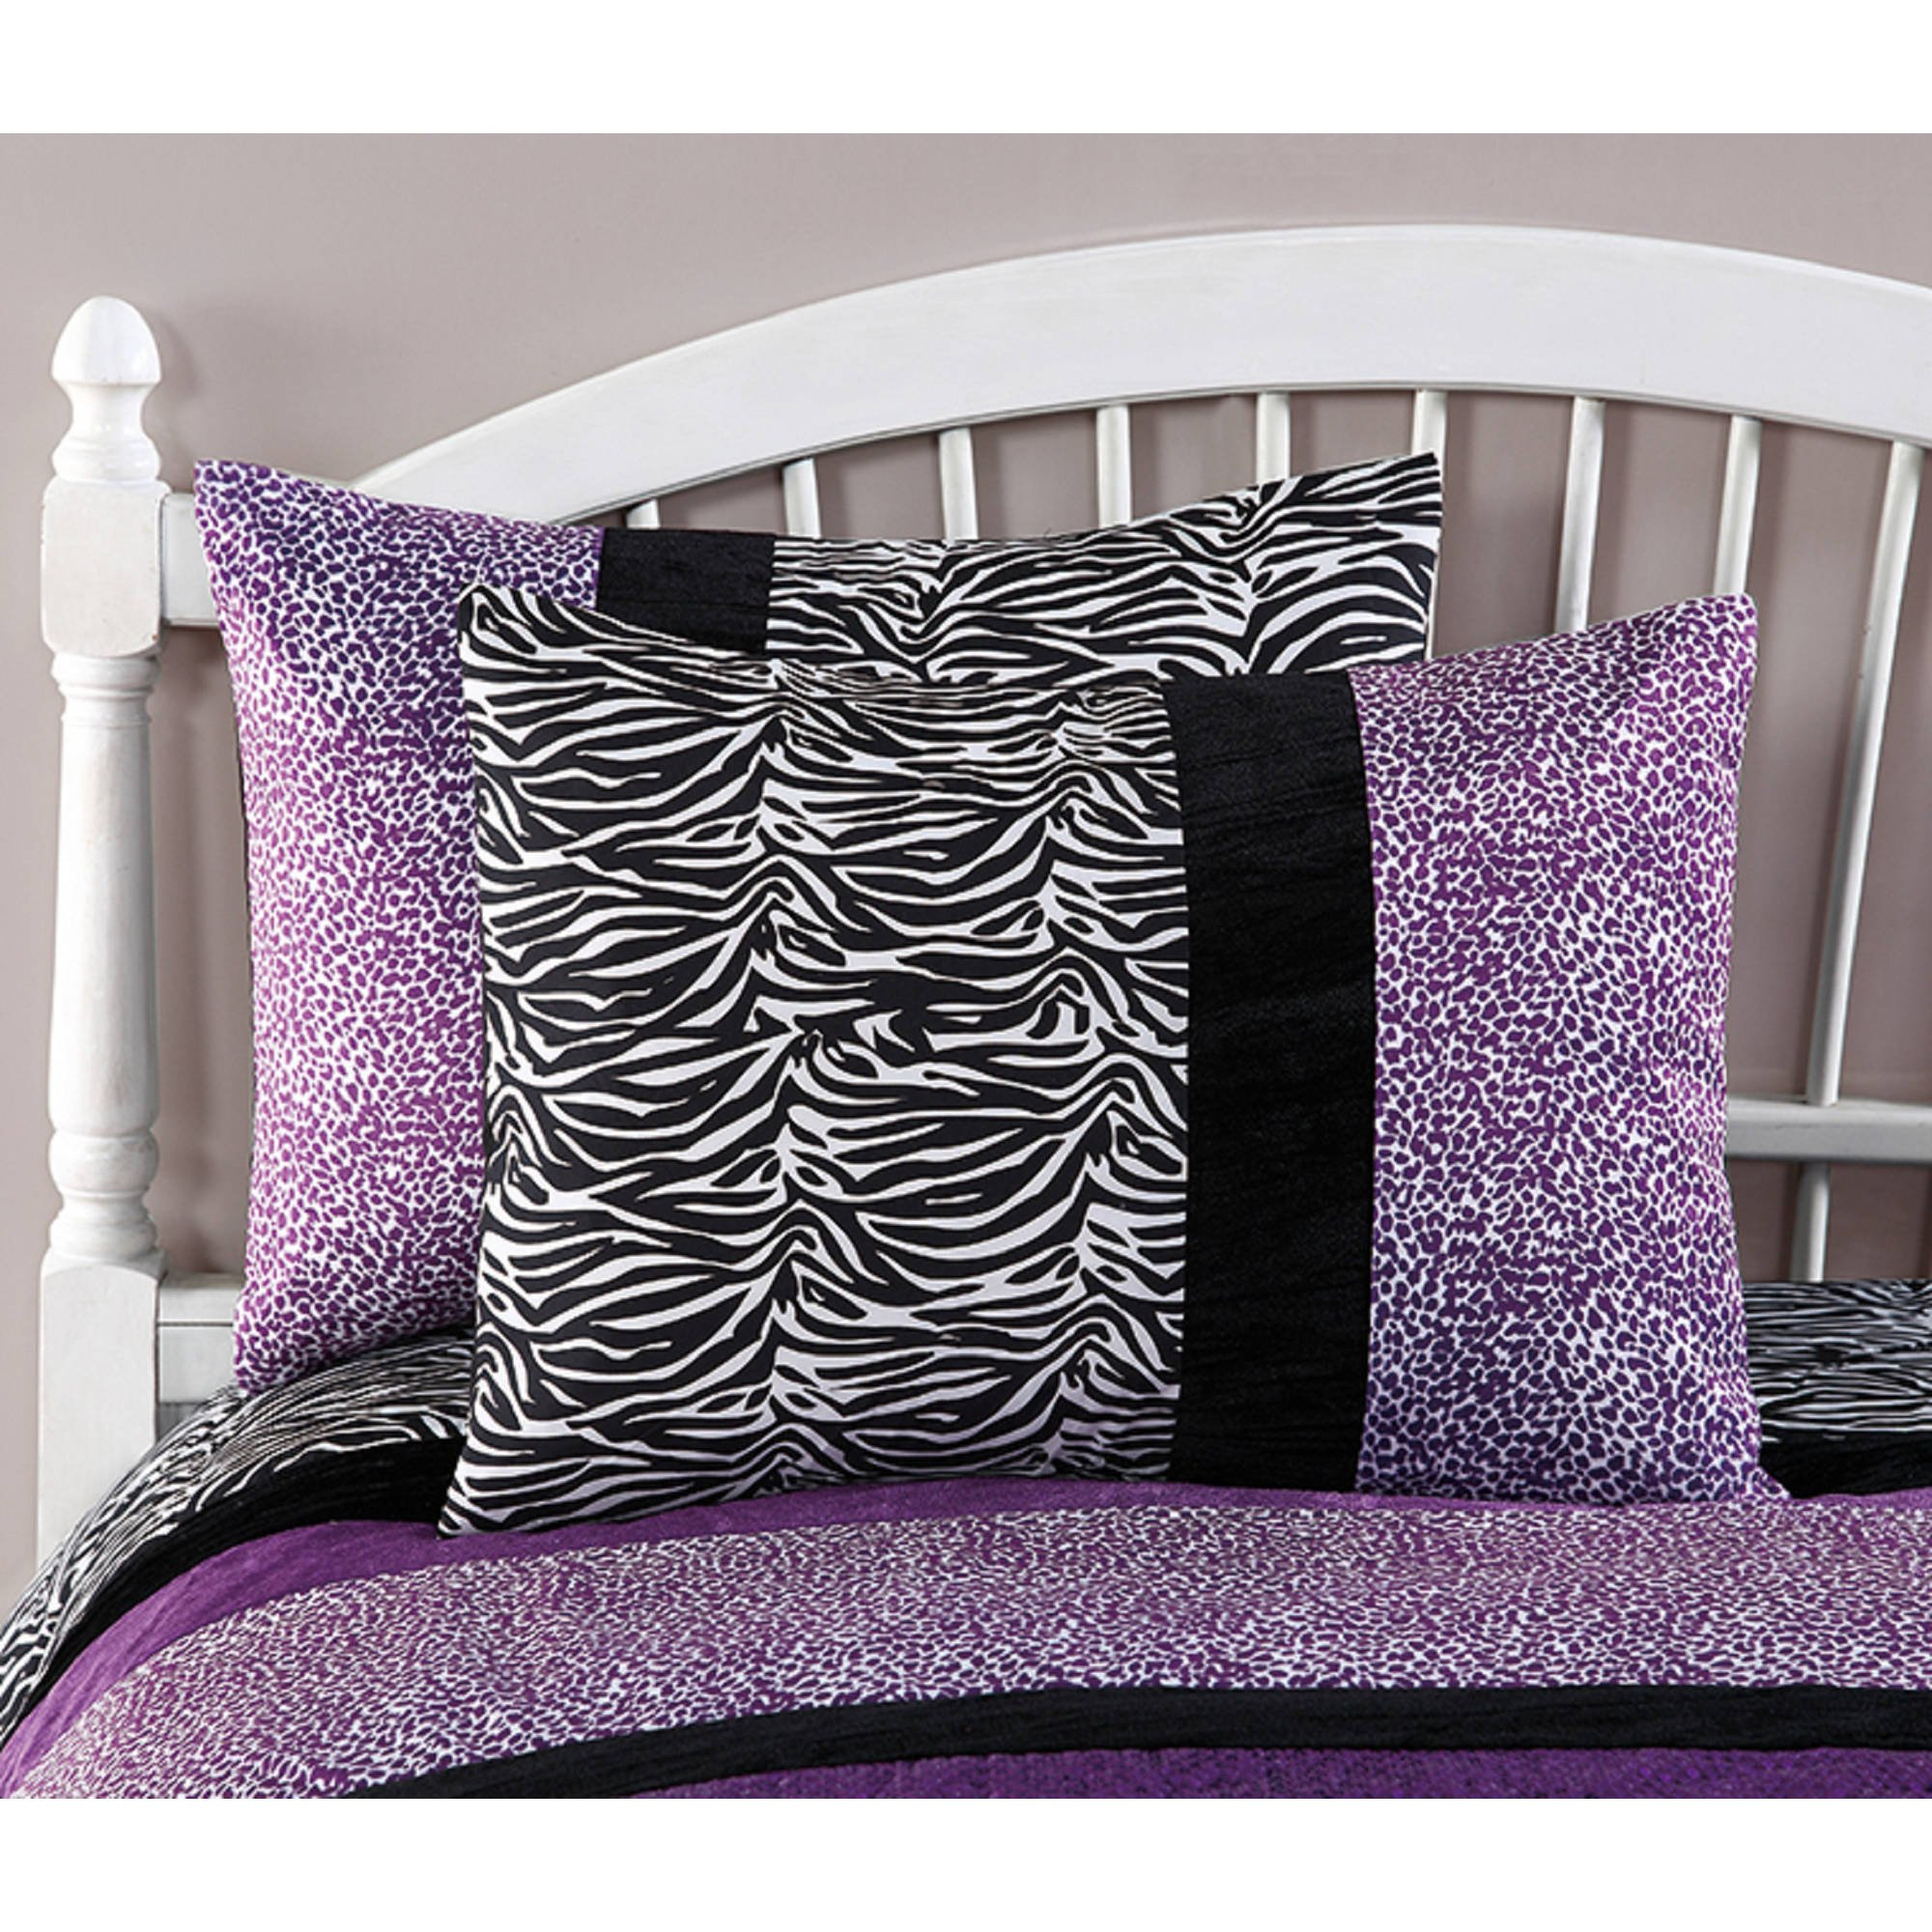 CA 3 Piece Girls Violet Purple Glitter Cheetah Print Comforter Full Queen Set, Black White Zebra Stripes Bedding Plum Spotted Animal Print Safari Jungle Zoo Wild Exotic, Reversible Solid Polyester